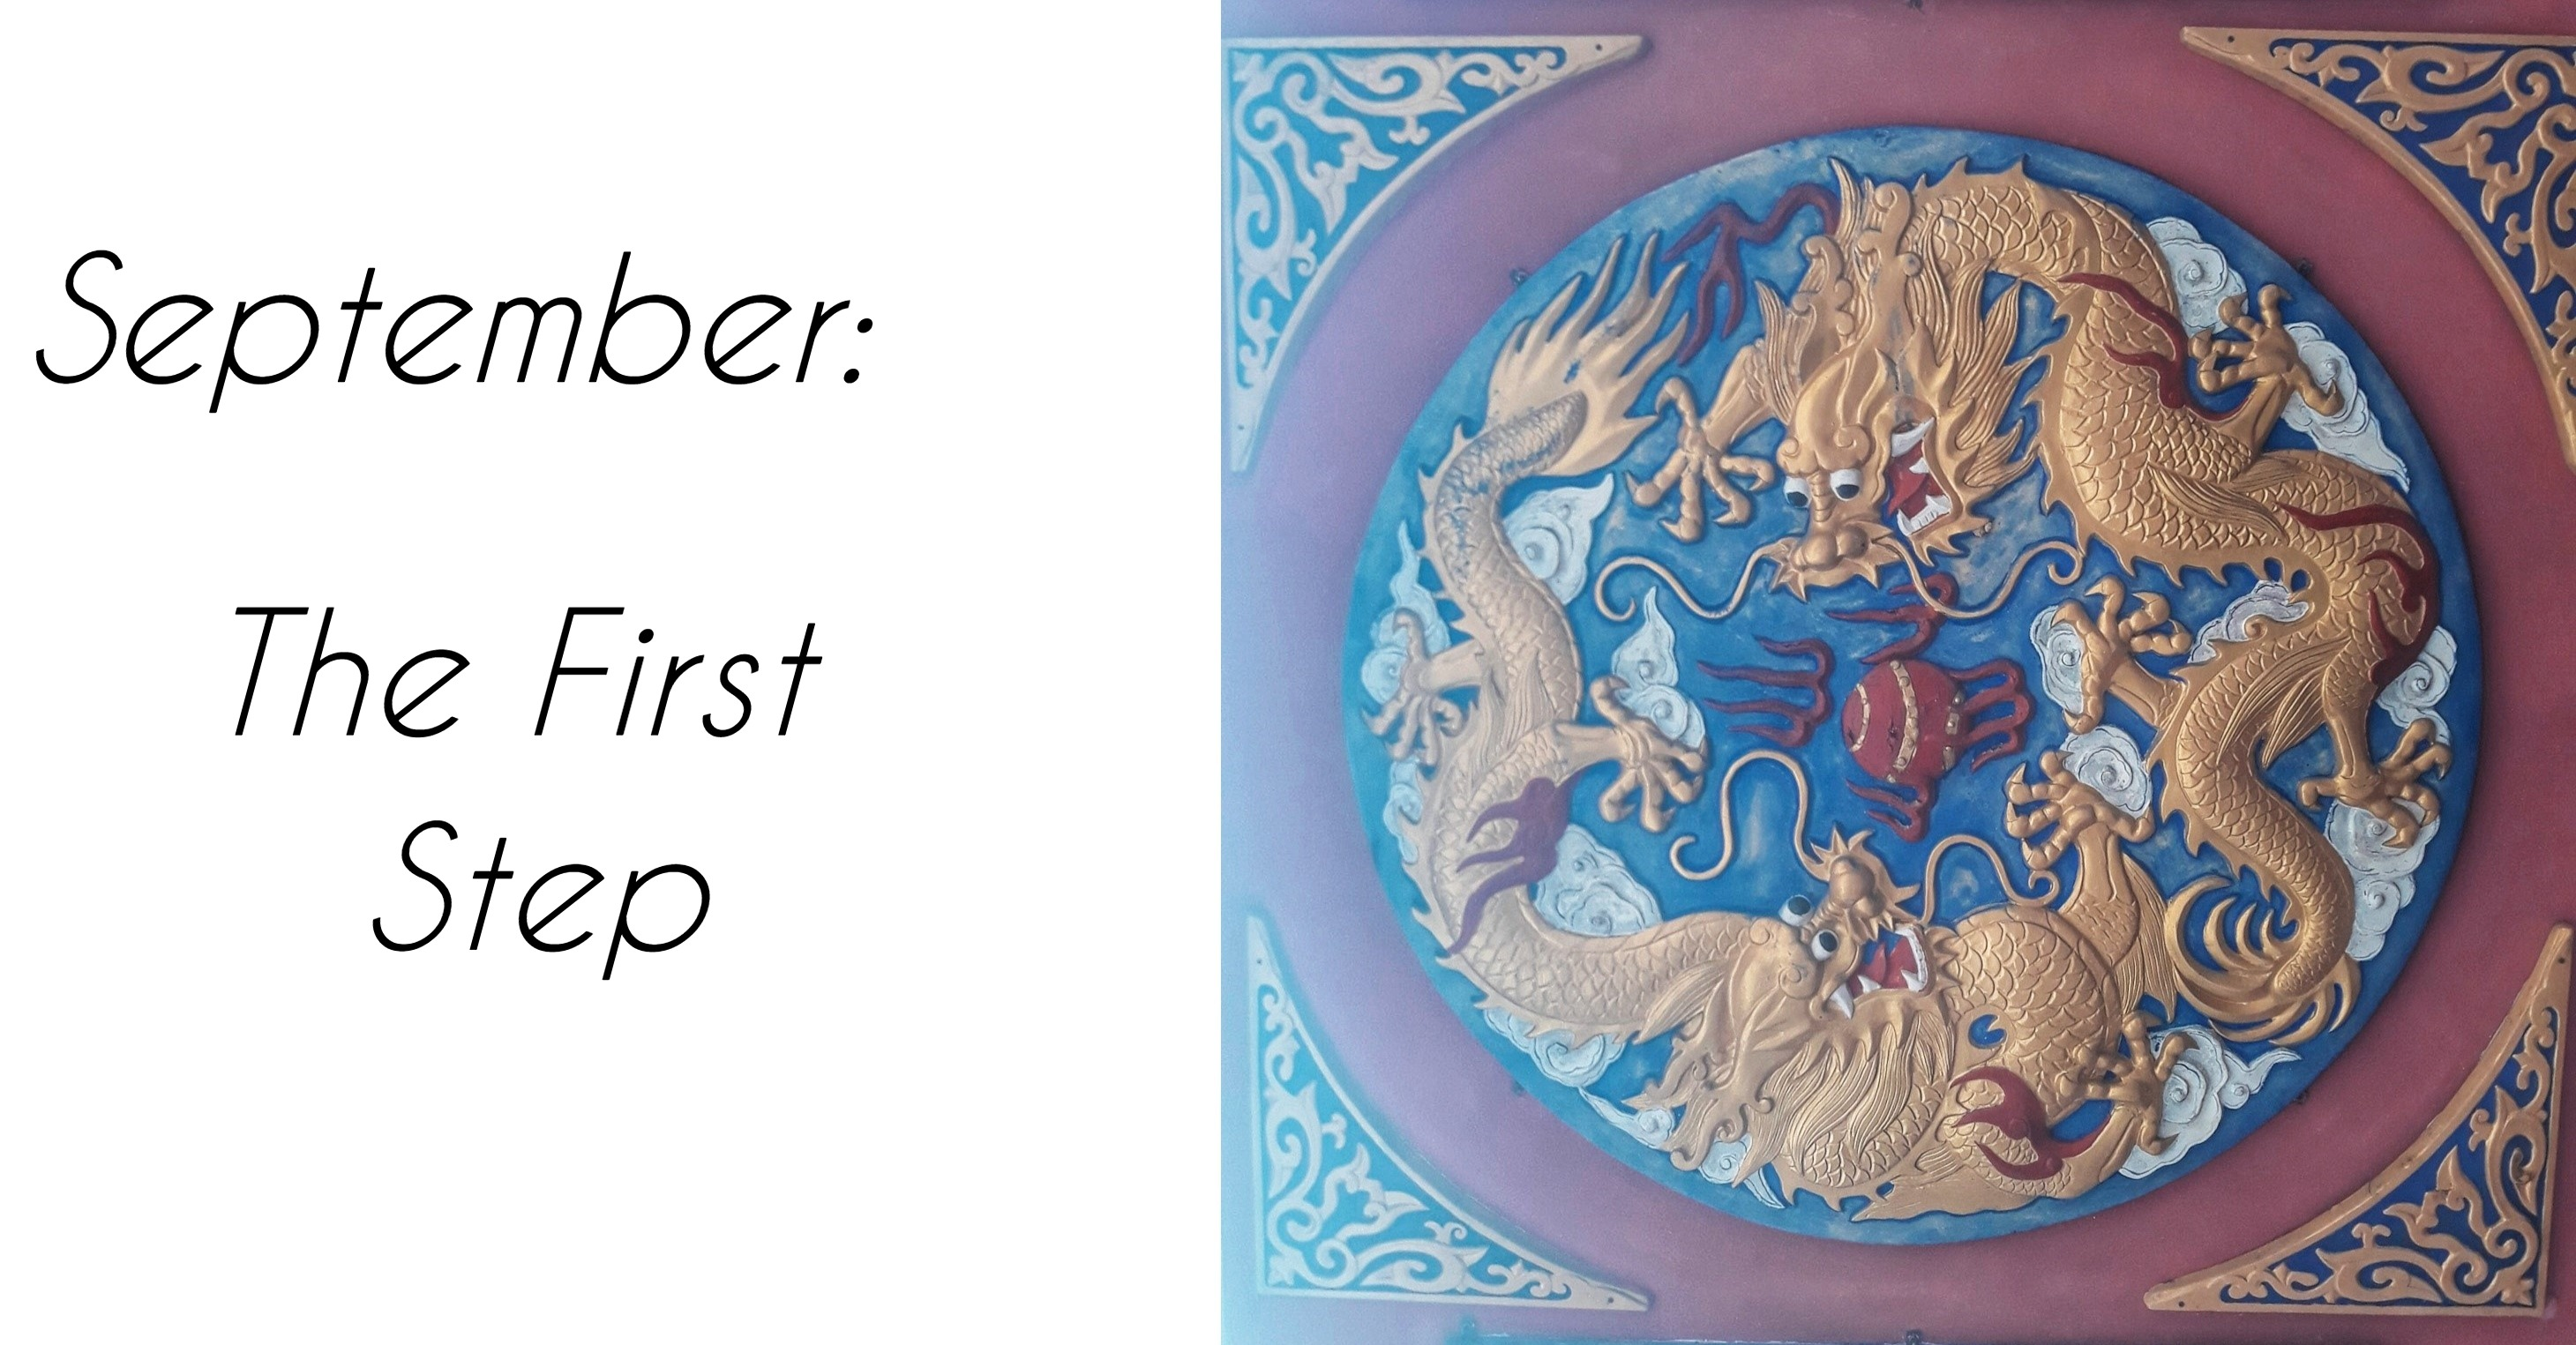 September: The First Step (Photo of dragons from a temple)